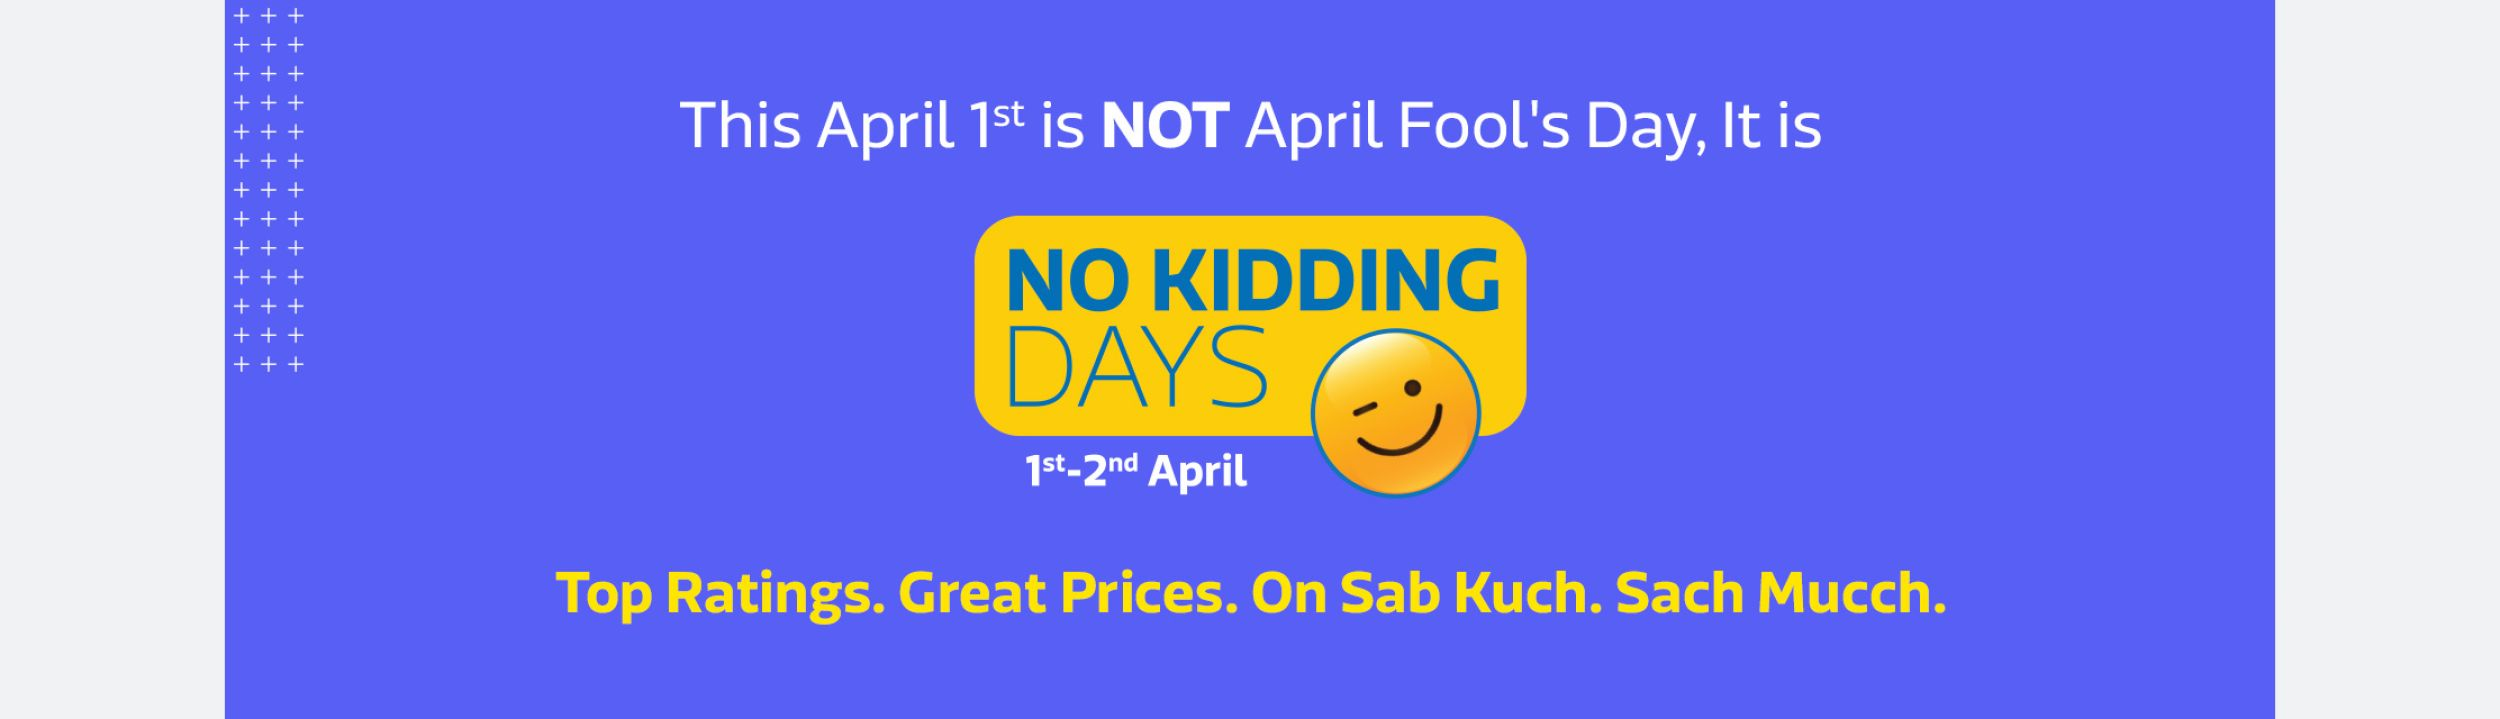 flipkart No Kidding days sale